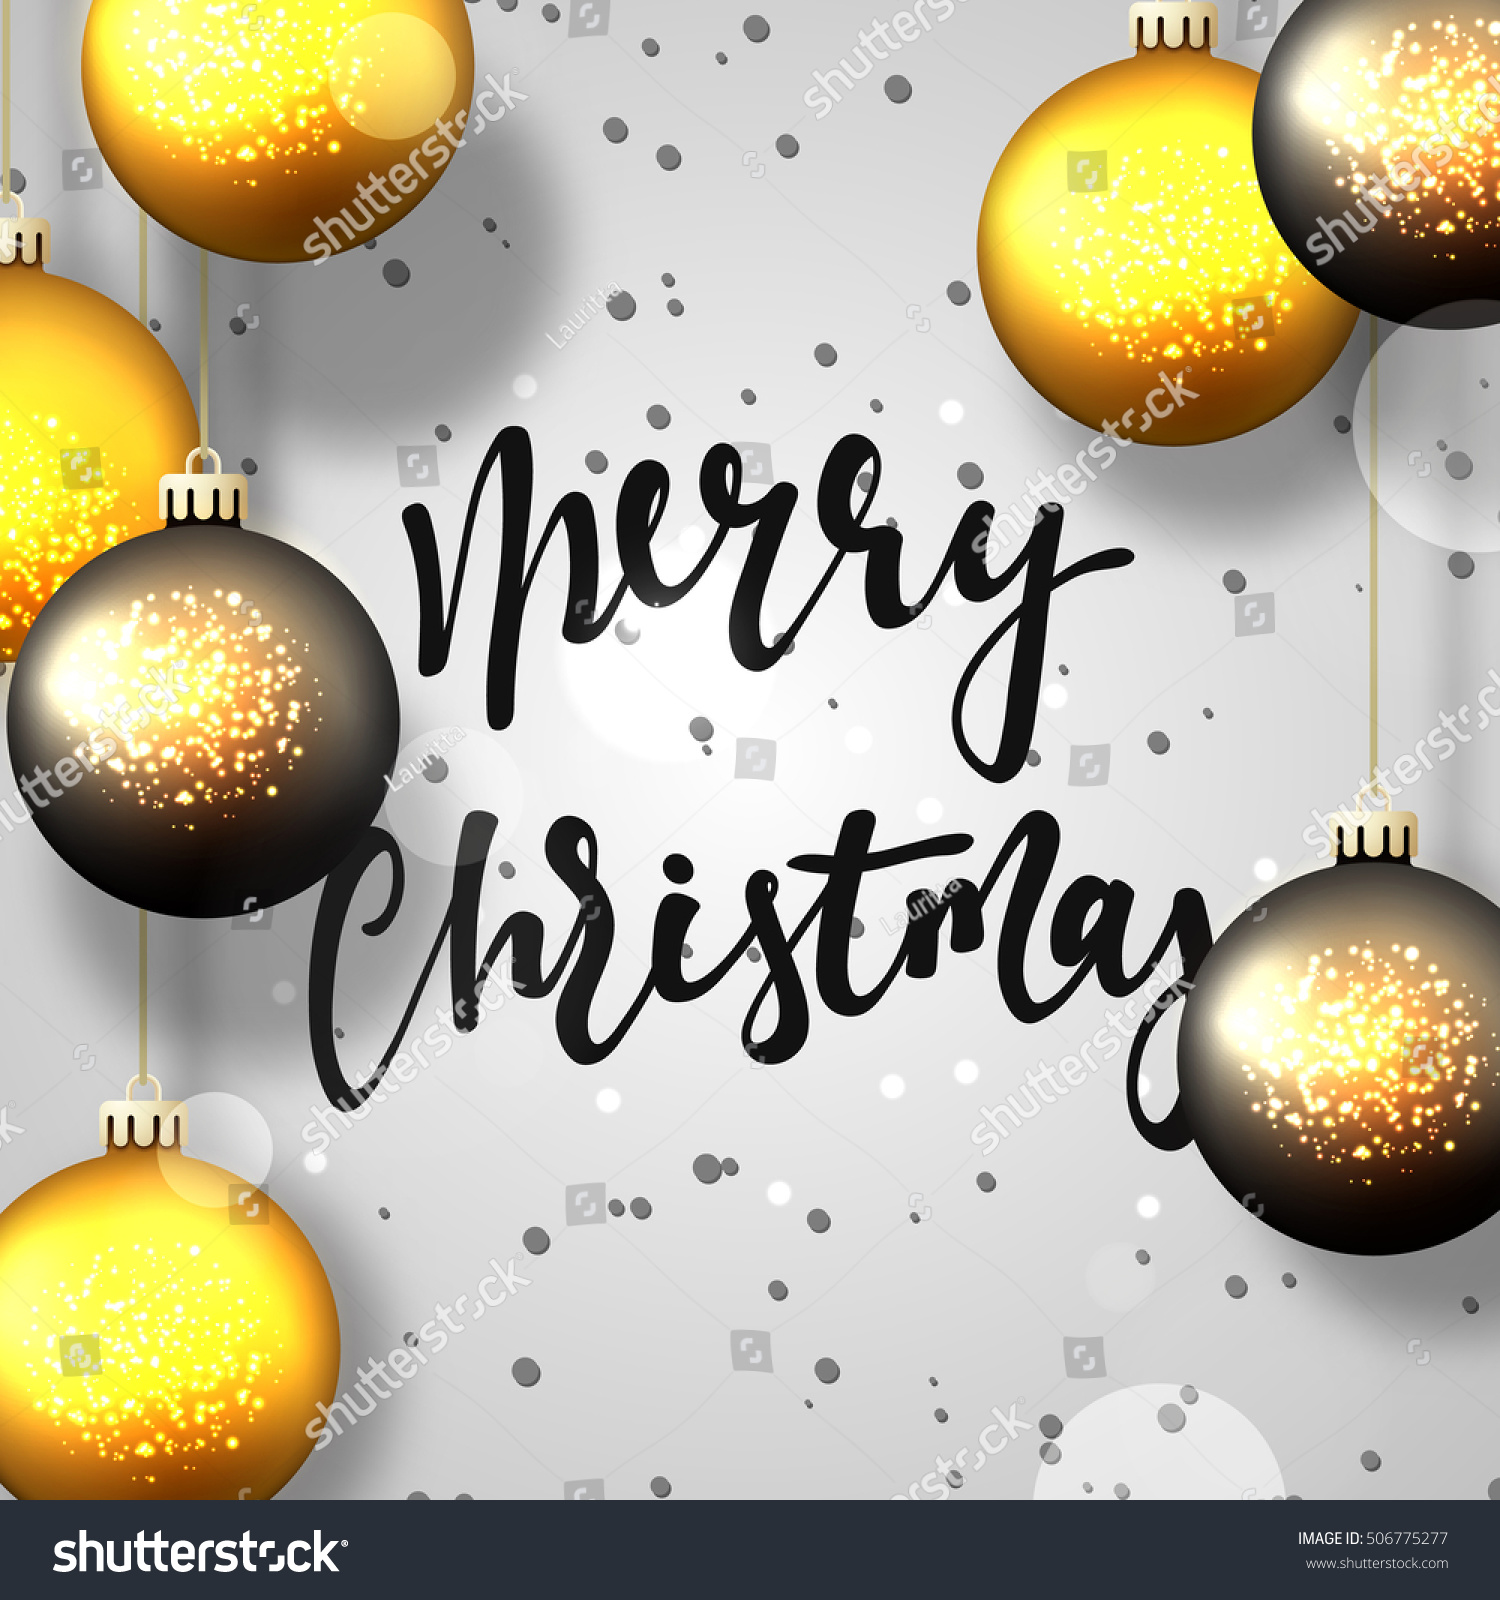 merry christmas and happy new year greeting card gray background with christmas balls and snowflakes